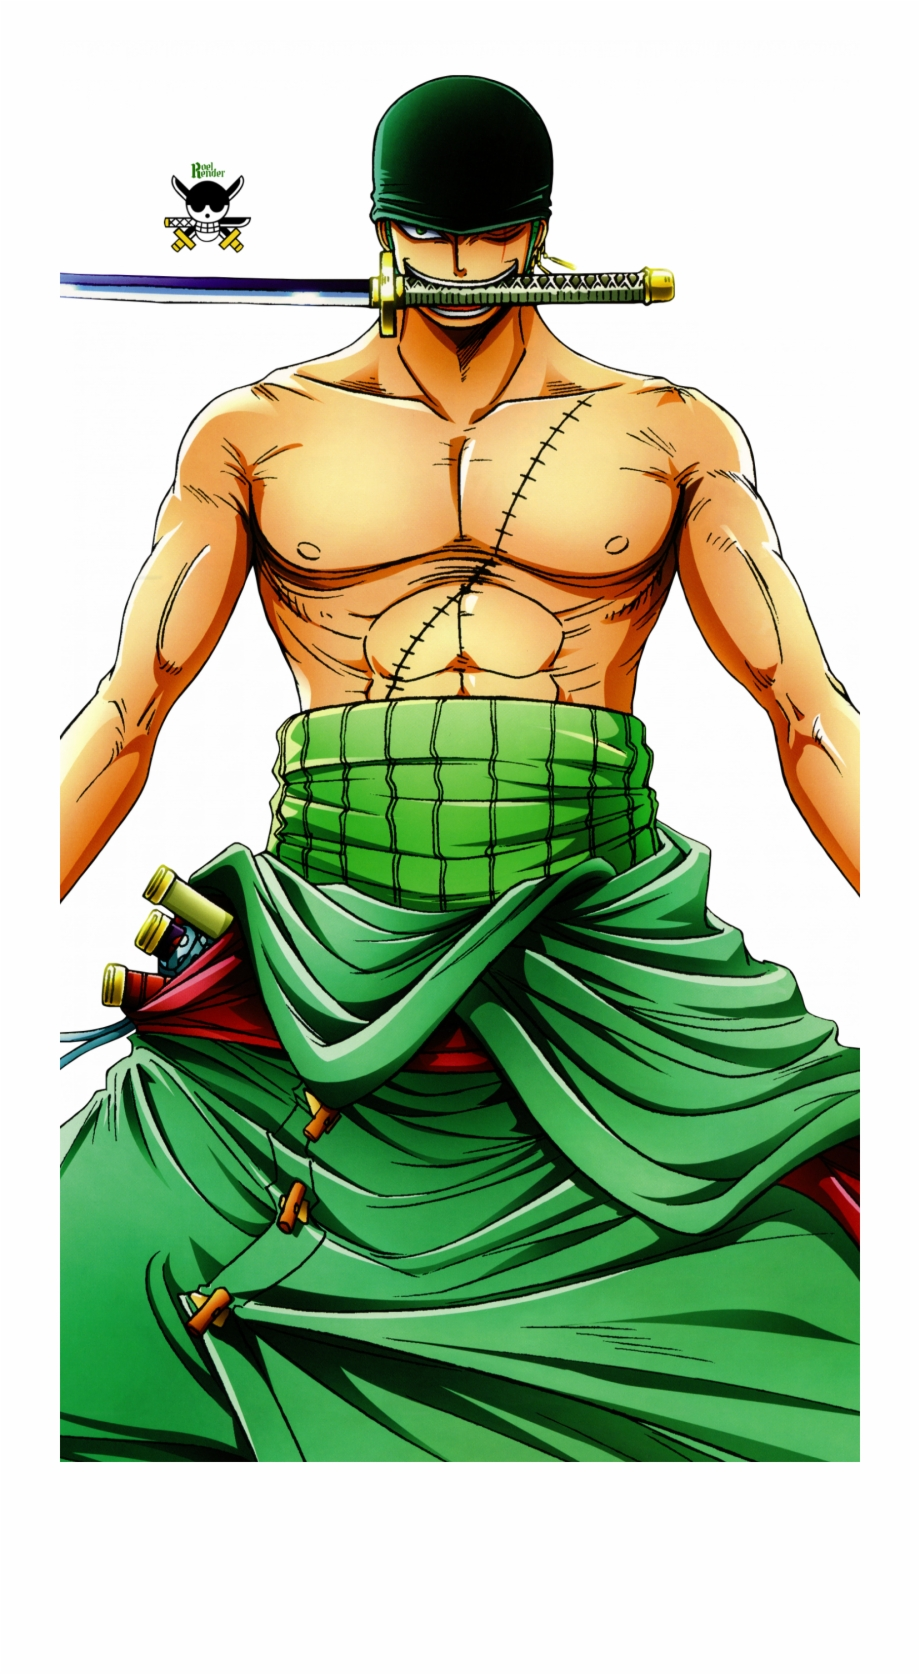 518 5183898 roronoa zoro hd wallpaper animation wallpapers roronoa zoro